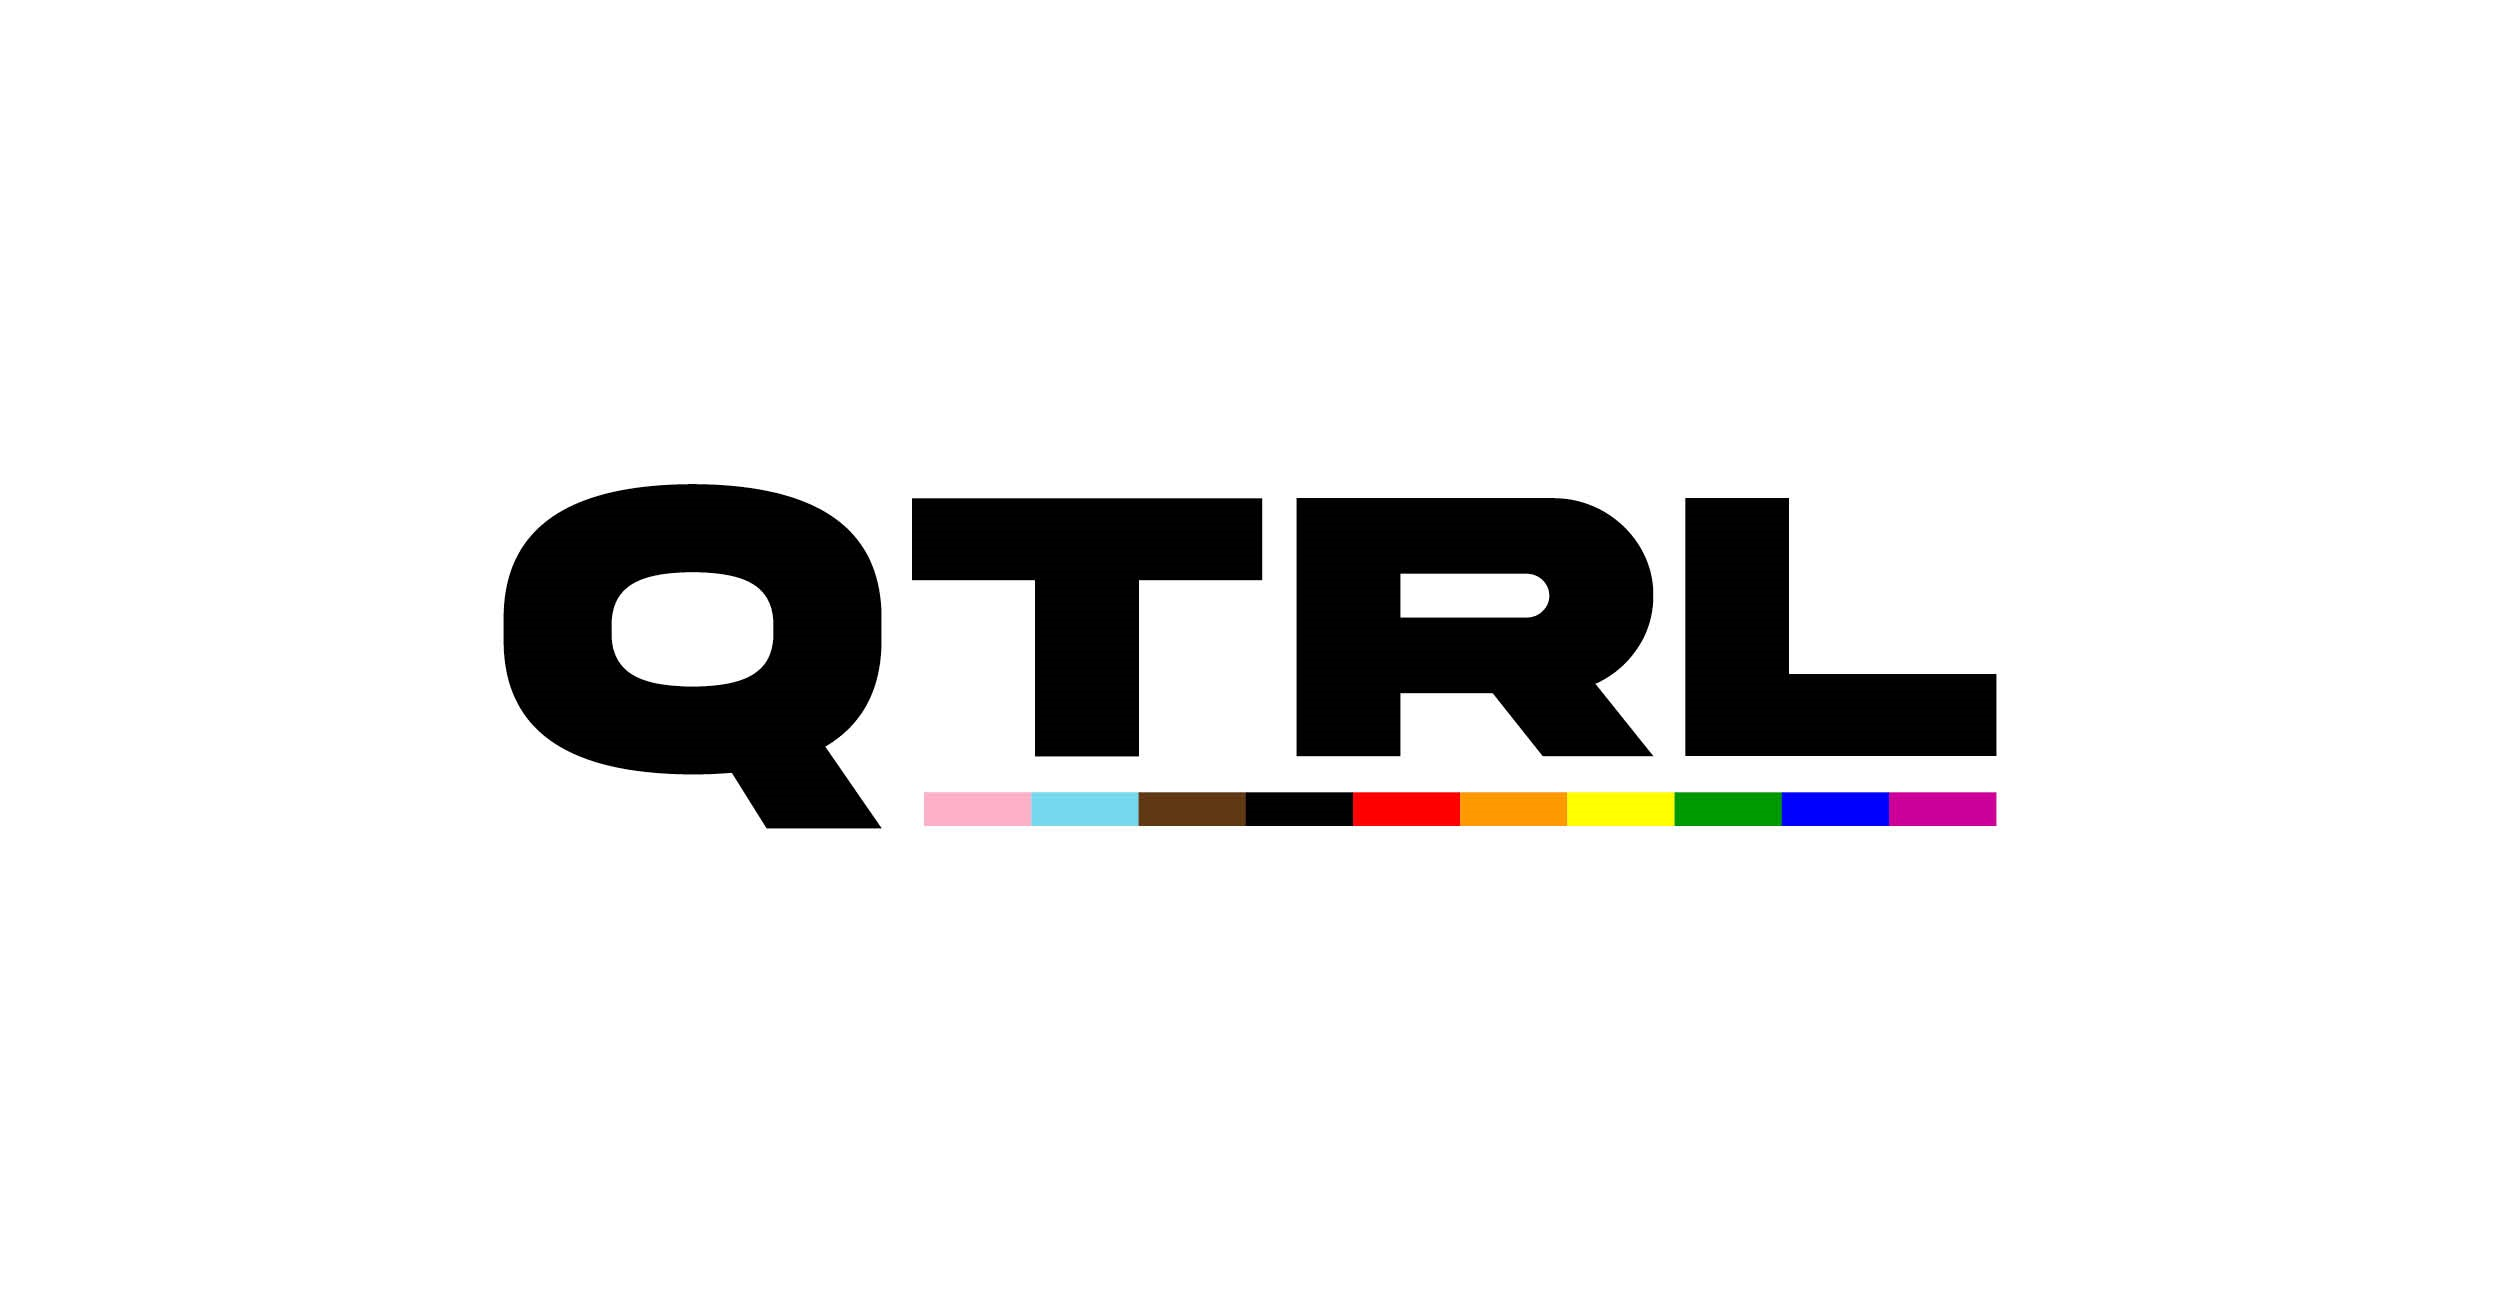 Queer Trans Research Lab logo featuring the letters QTRL in big block text, with an underline underneath in the colours of the BIPOC-inclusive pride flag featuring the trans and rainbow colours.